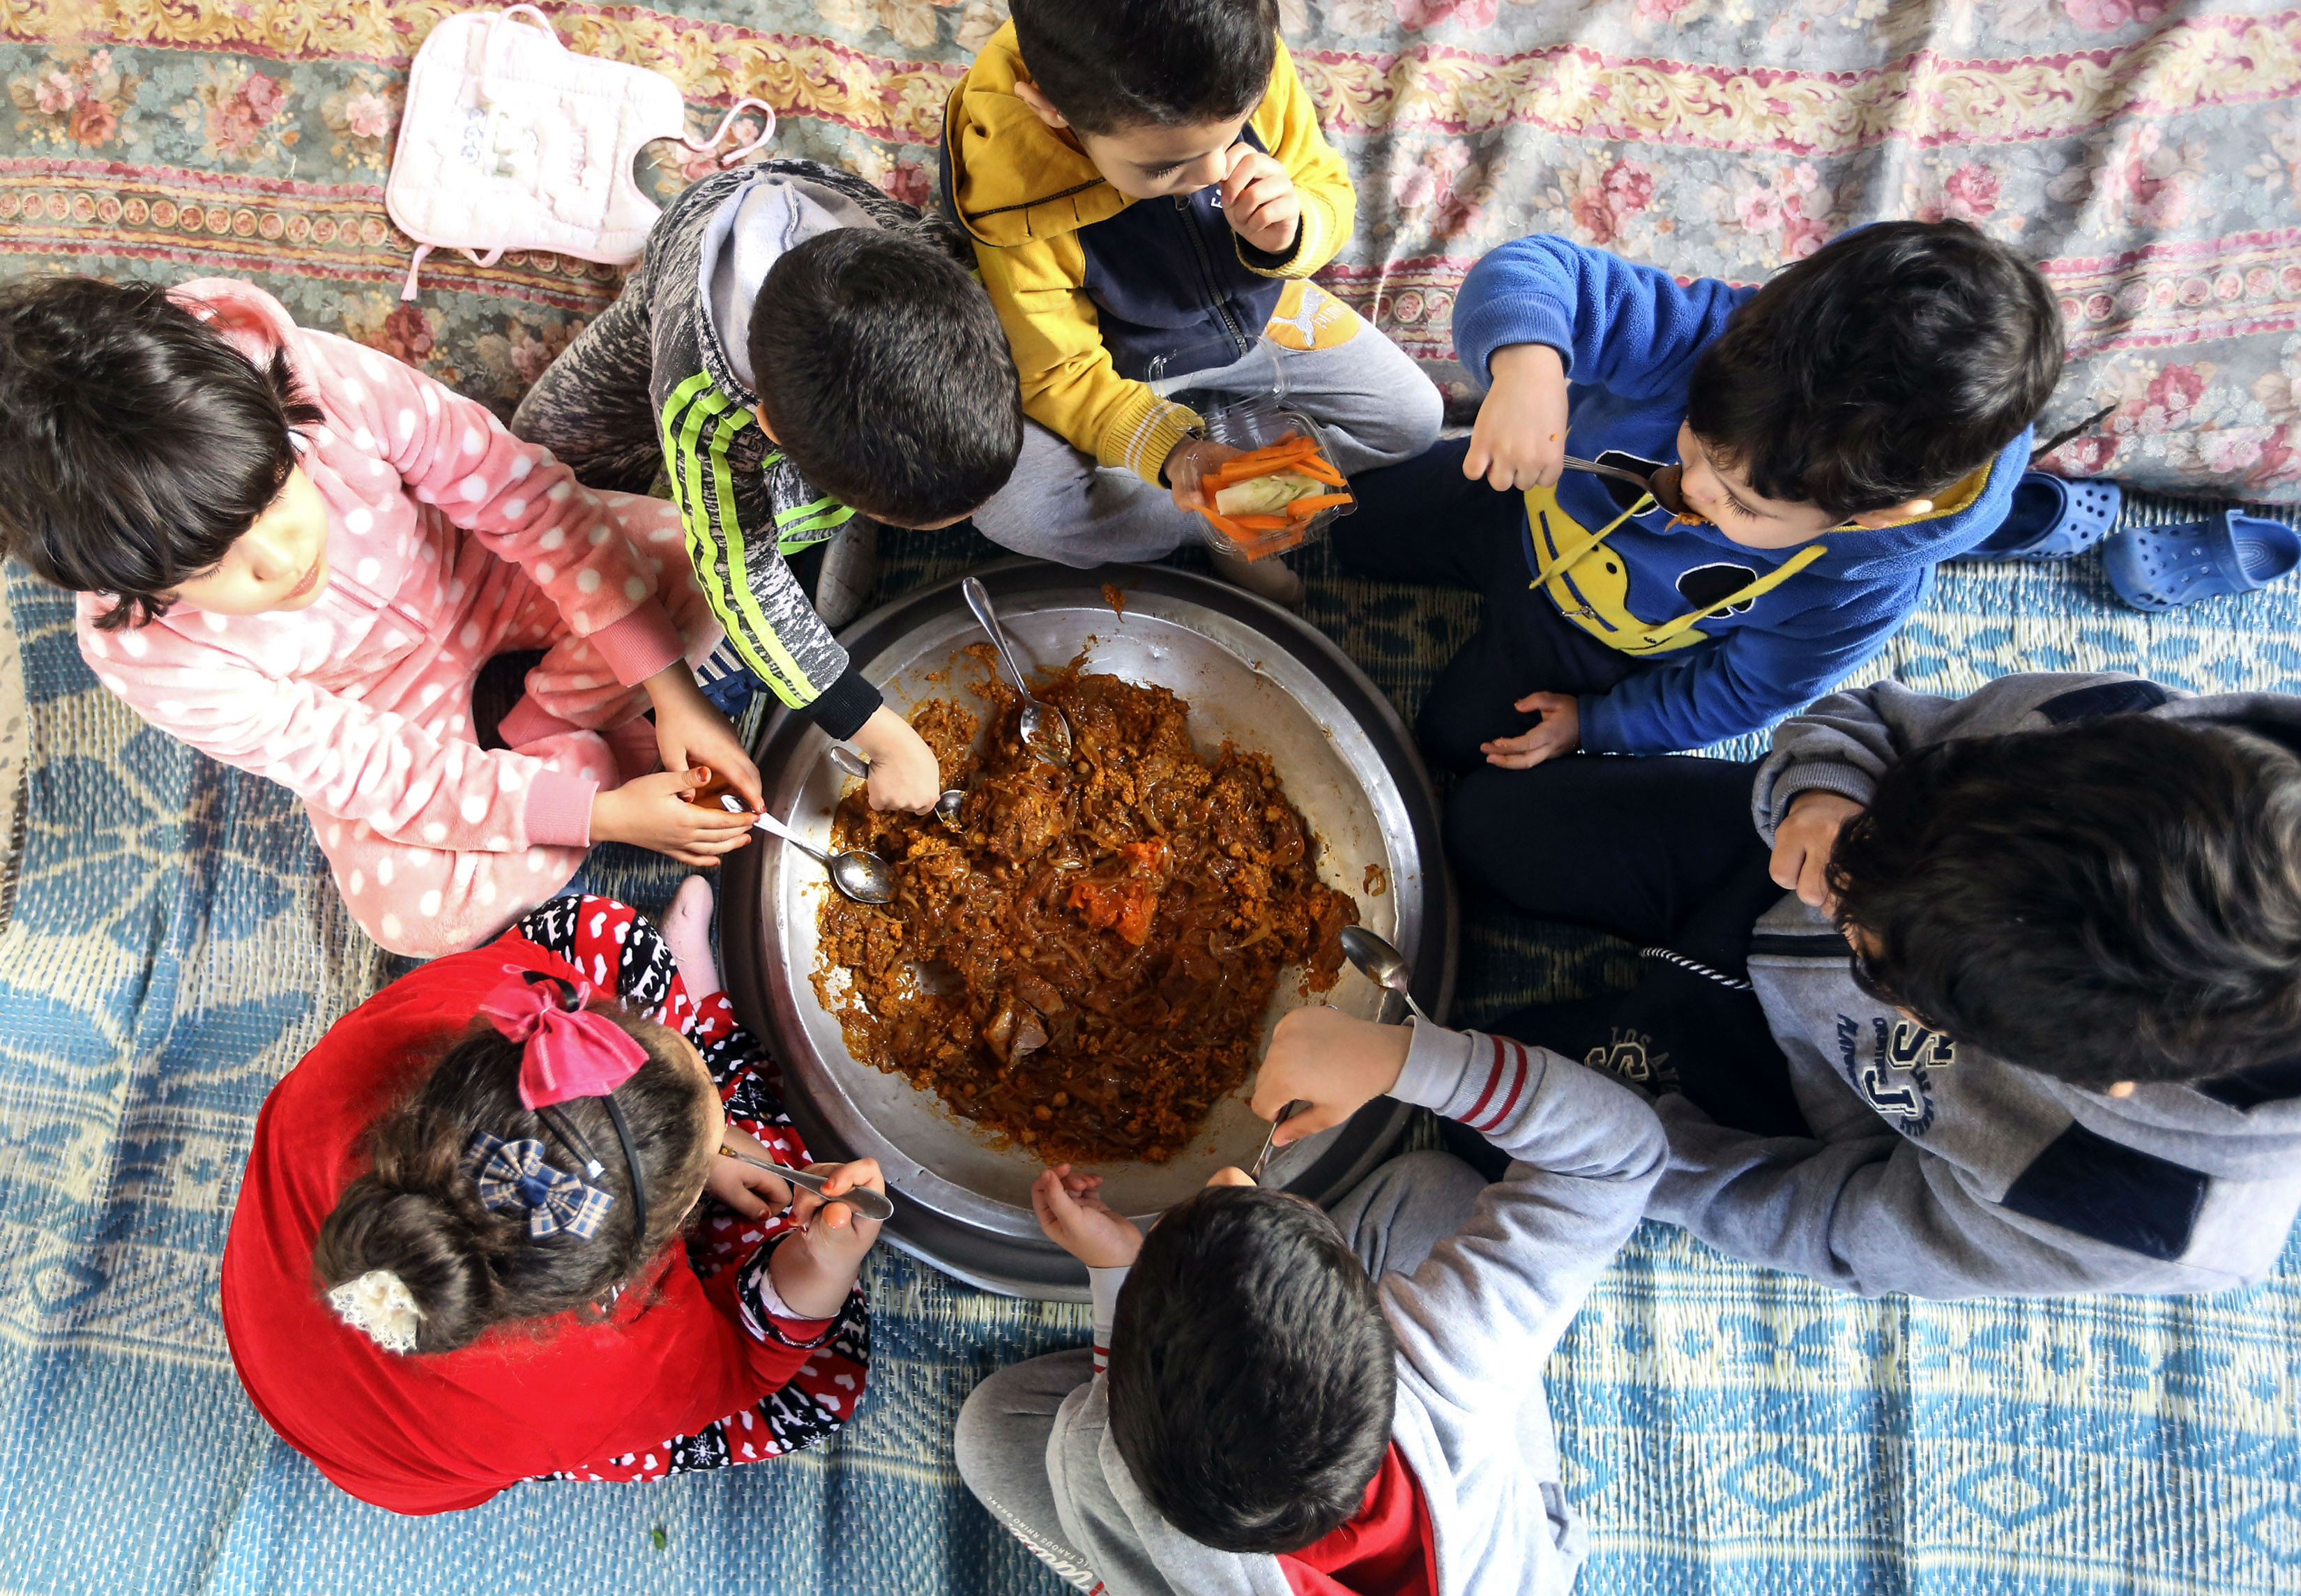 Libyan children preparing to eat freshly cooked couscous with lamb and onions in Tripoli in February 2018 (AFP)